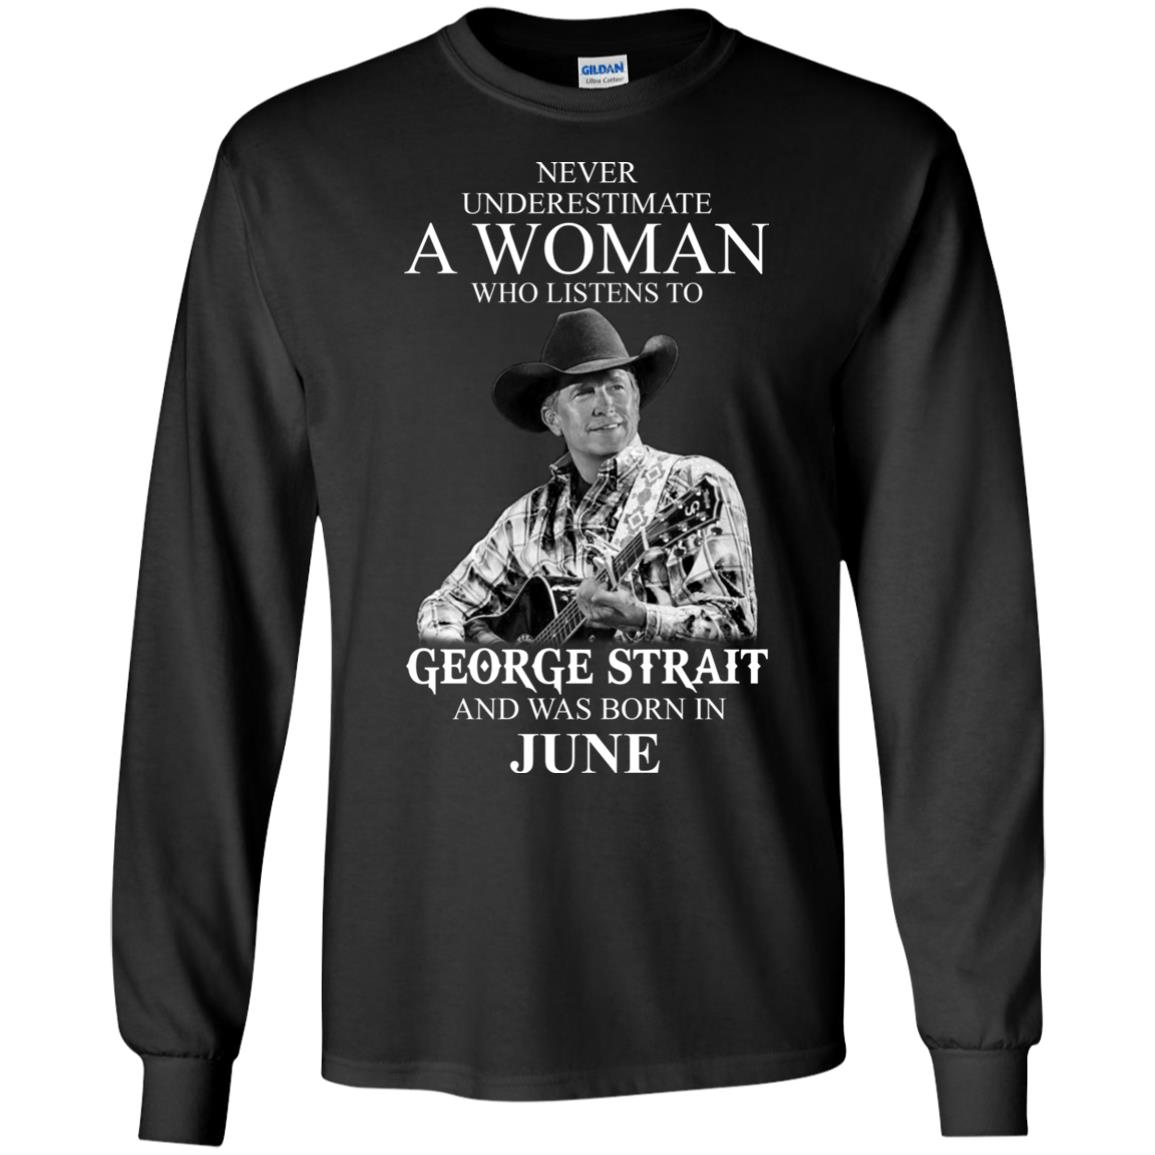 image 484 - Never Underestimate A Woman Who Listens To George Strait And Was Born In June shirt